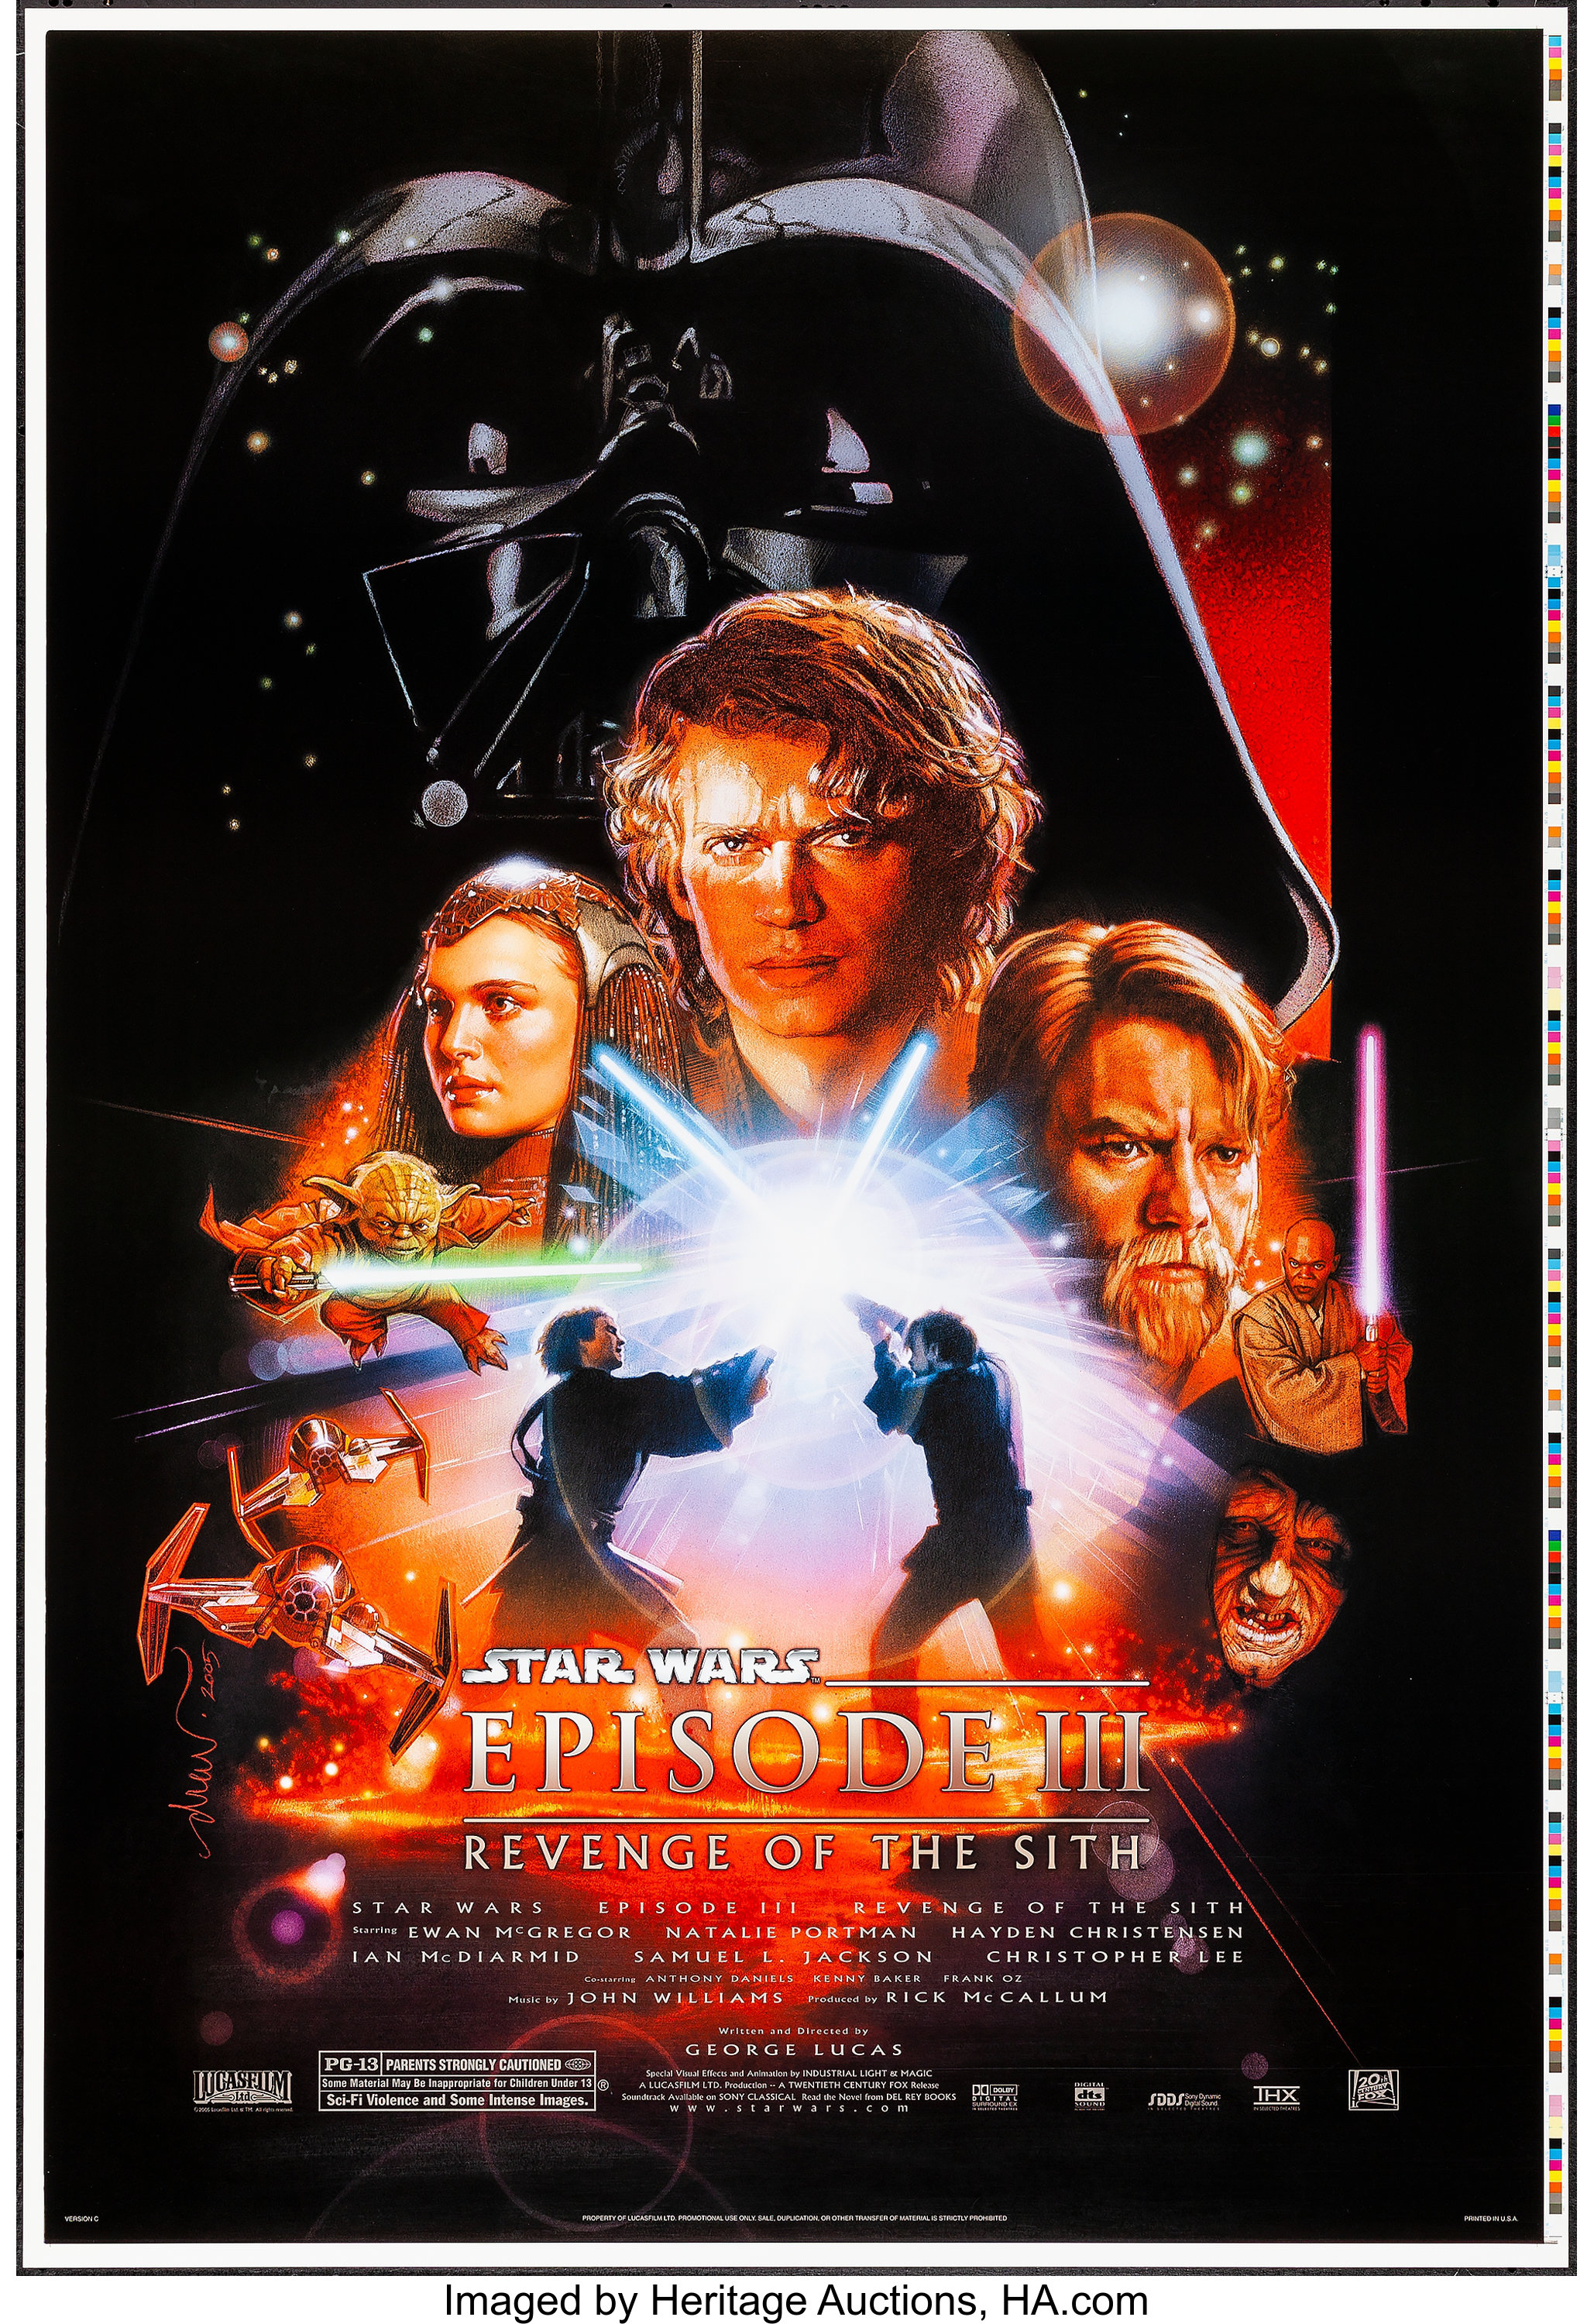 Star Wars Episode Iii Revenge Of The Sith 20th Century Fox Lot 54341 Heritage Auctions